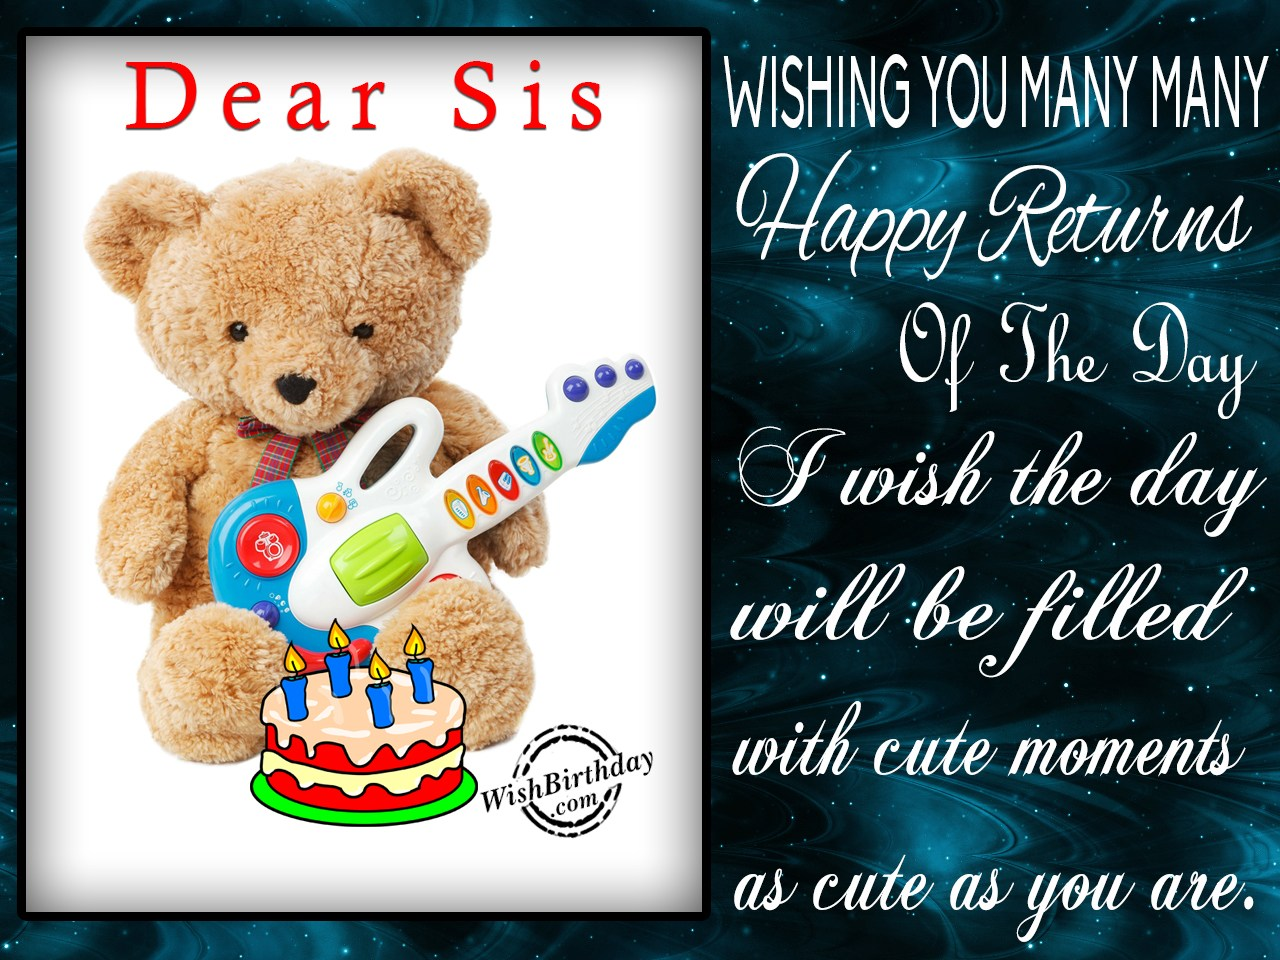 birthday wishes for sister greeting cards ; Wishing-Your-Day-Will-be-Filled-With-Cute-Moment